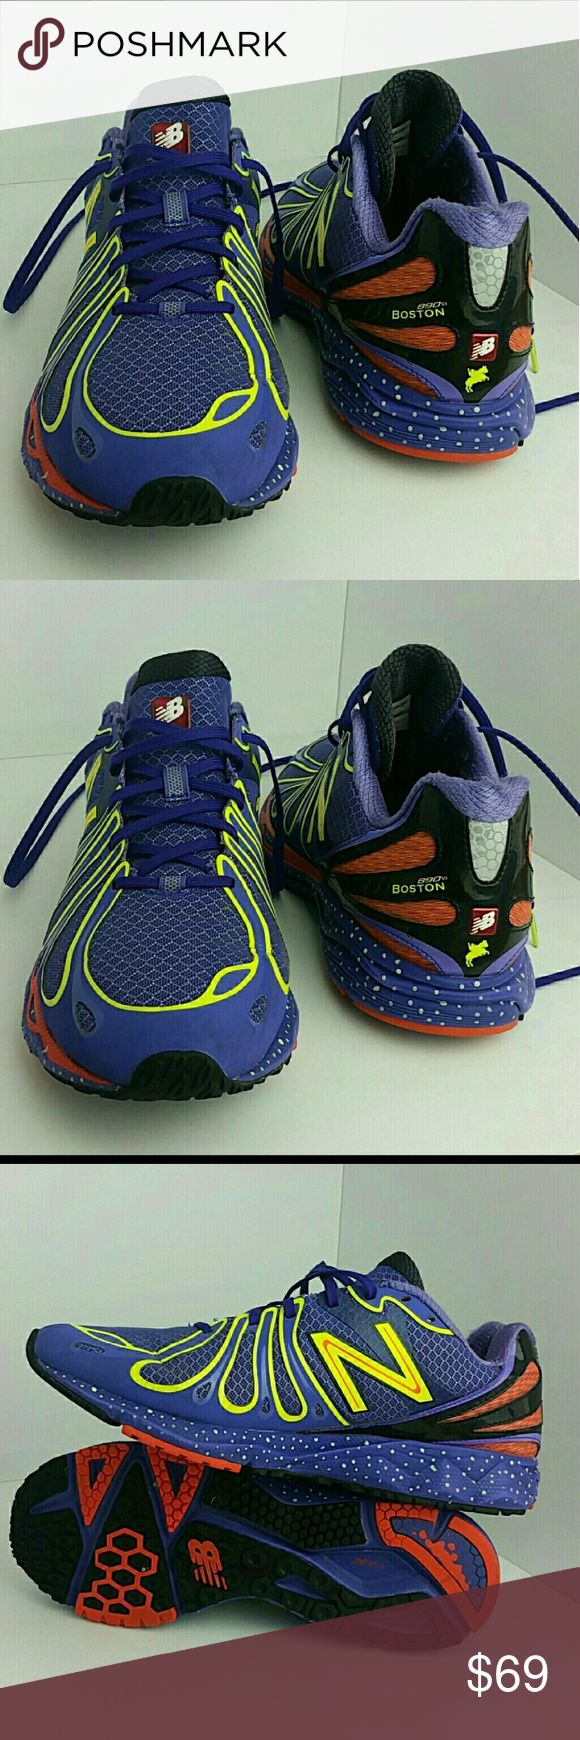 NEW BALANCE 890 V3 BOSTON MARATHON MEN'S SHOES VERY CLEAN INSIDE-OUT   SKE # MG New Balance Shoes Athletic Shoes